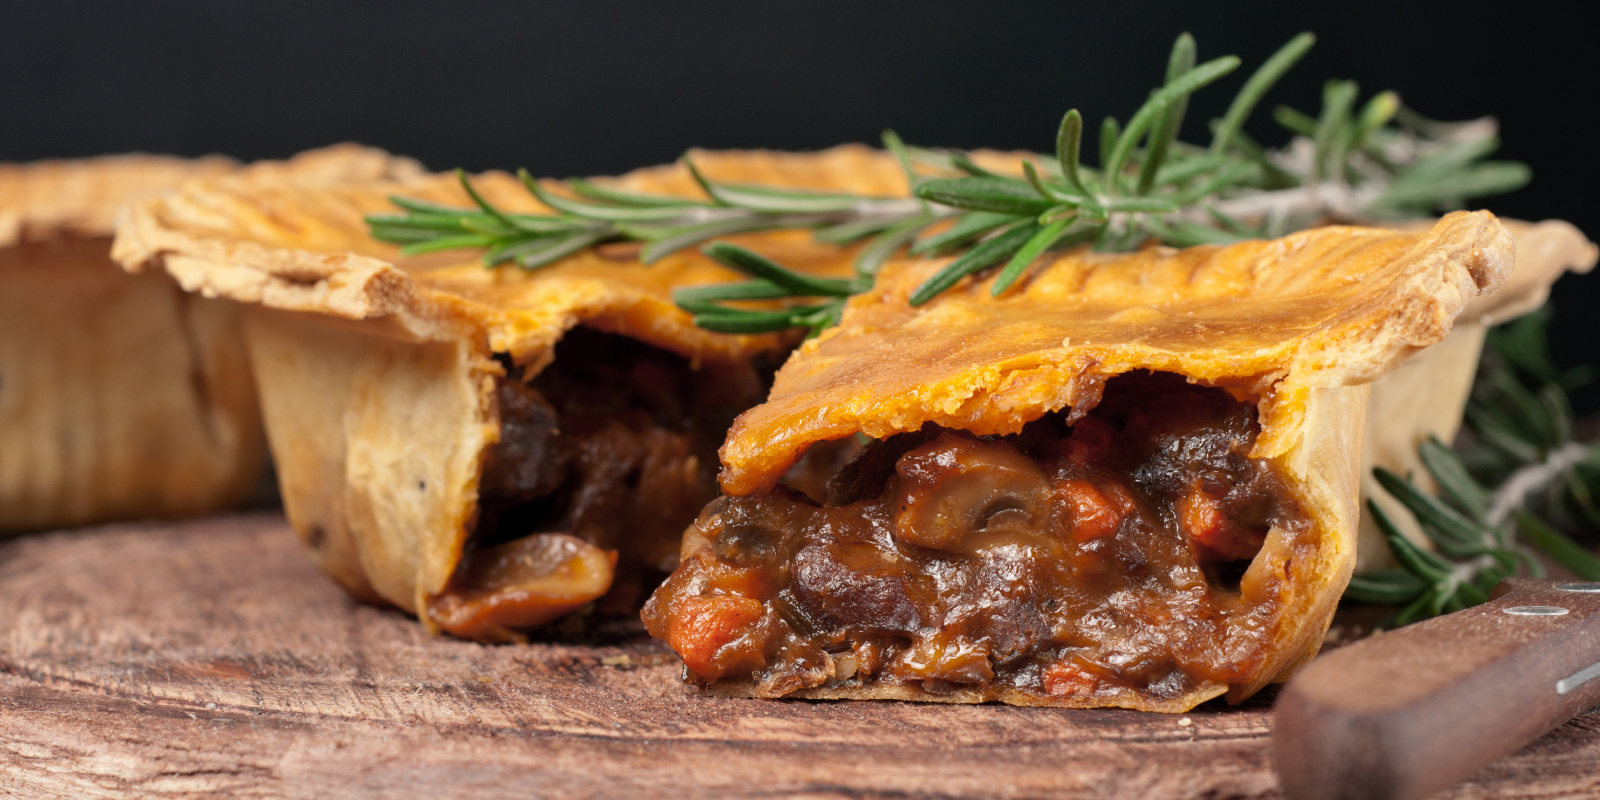 Pies & Ready Meals